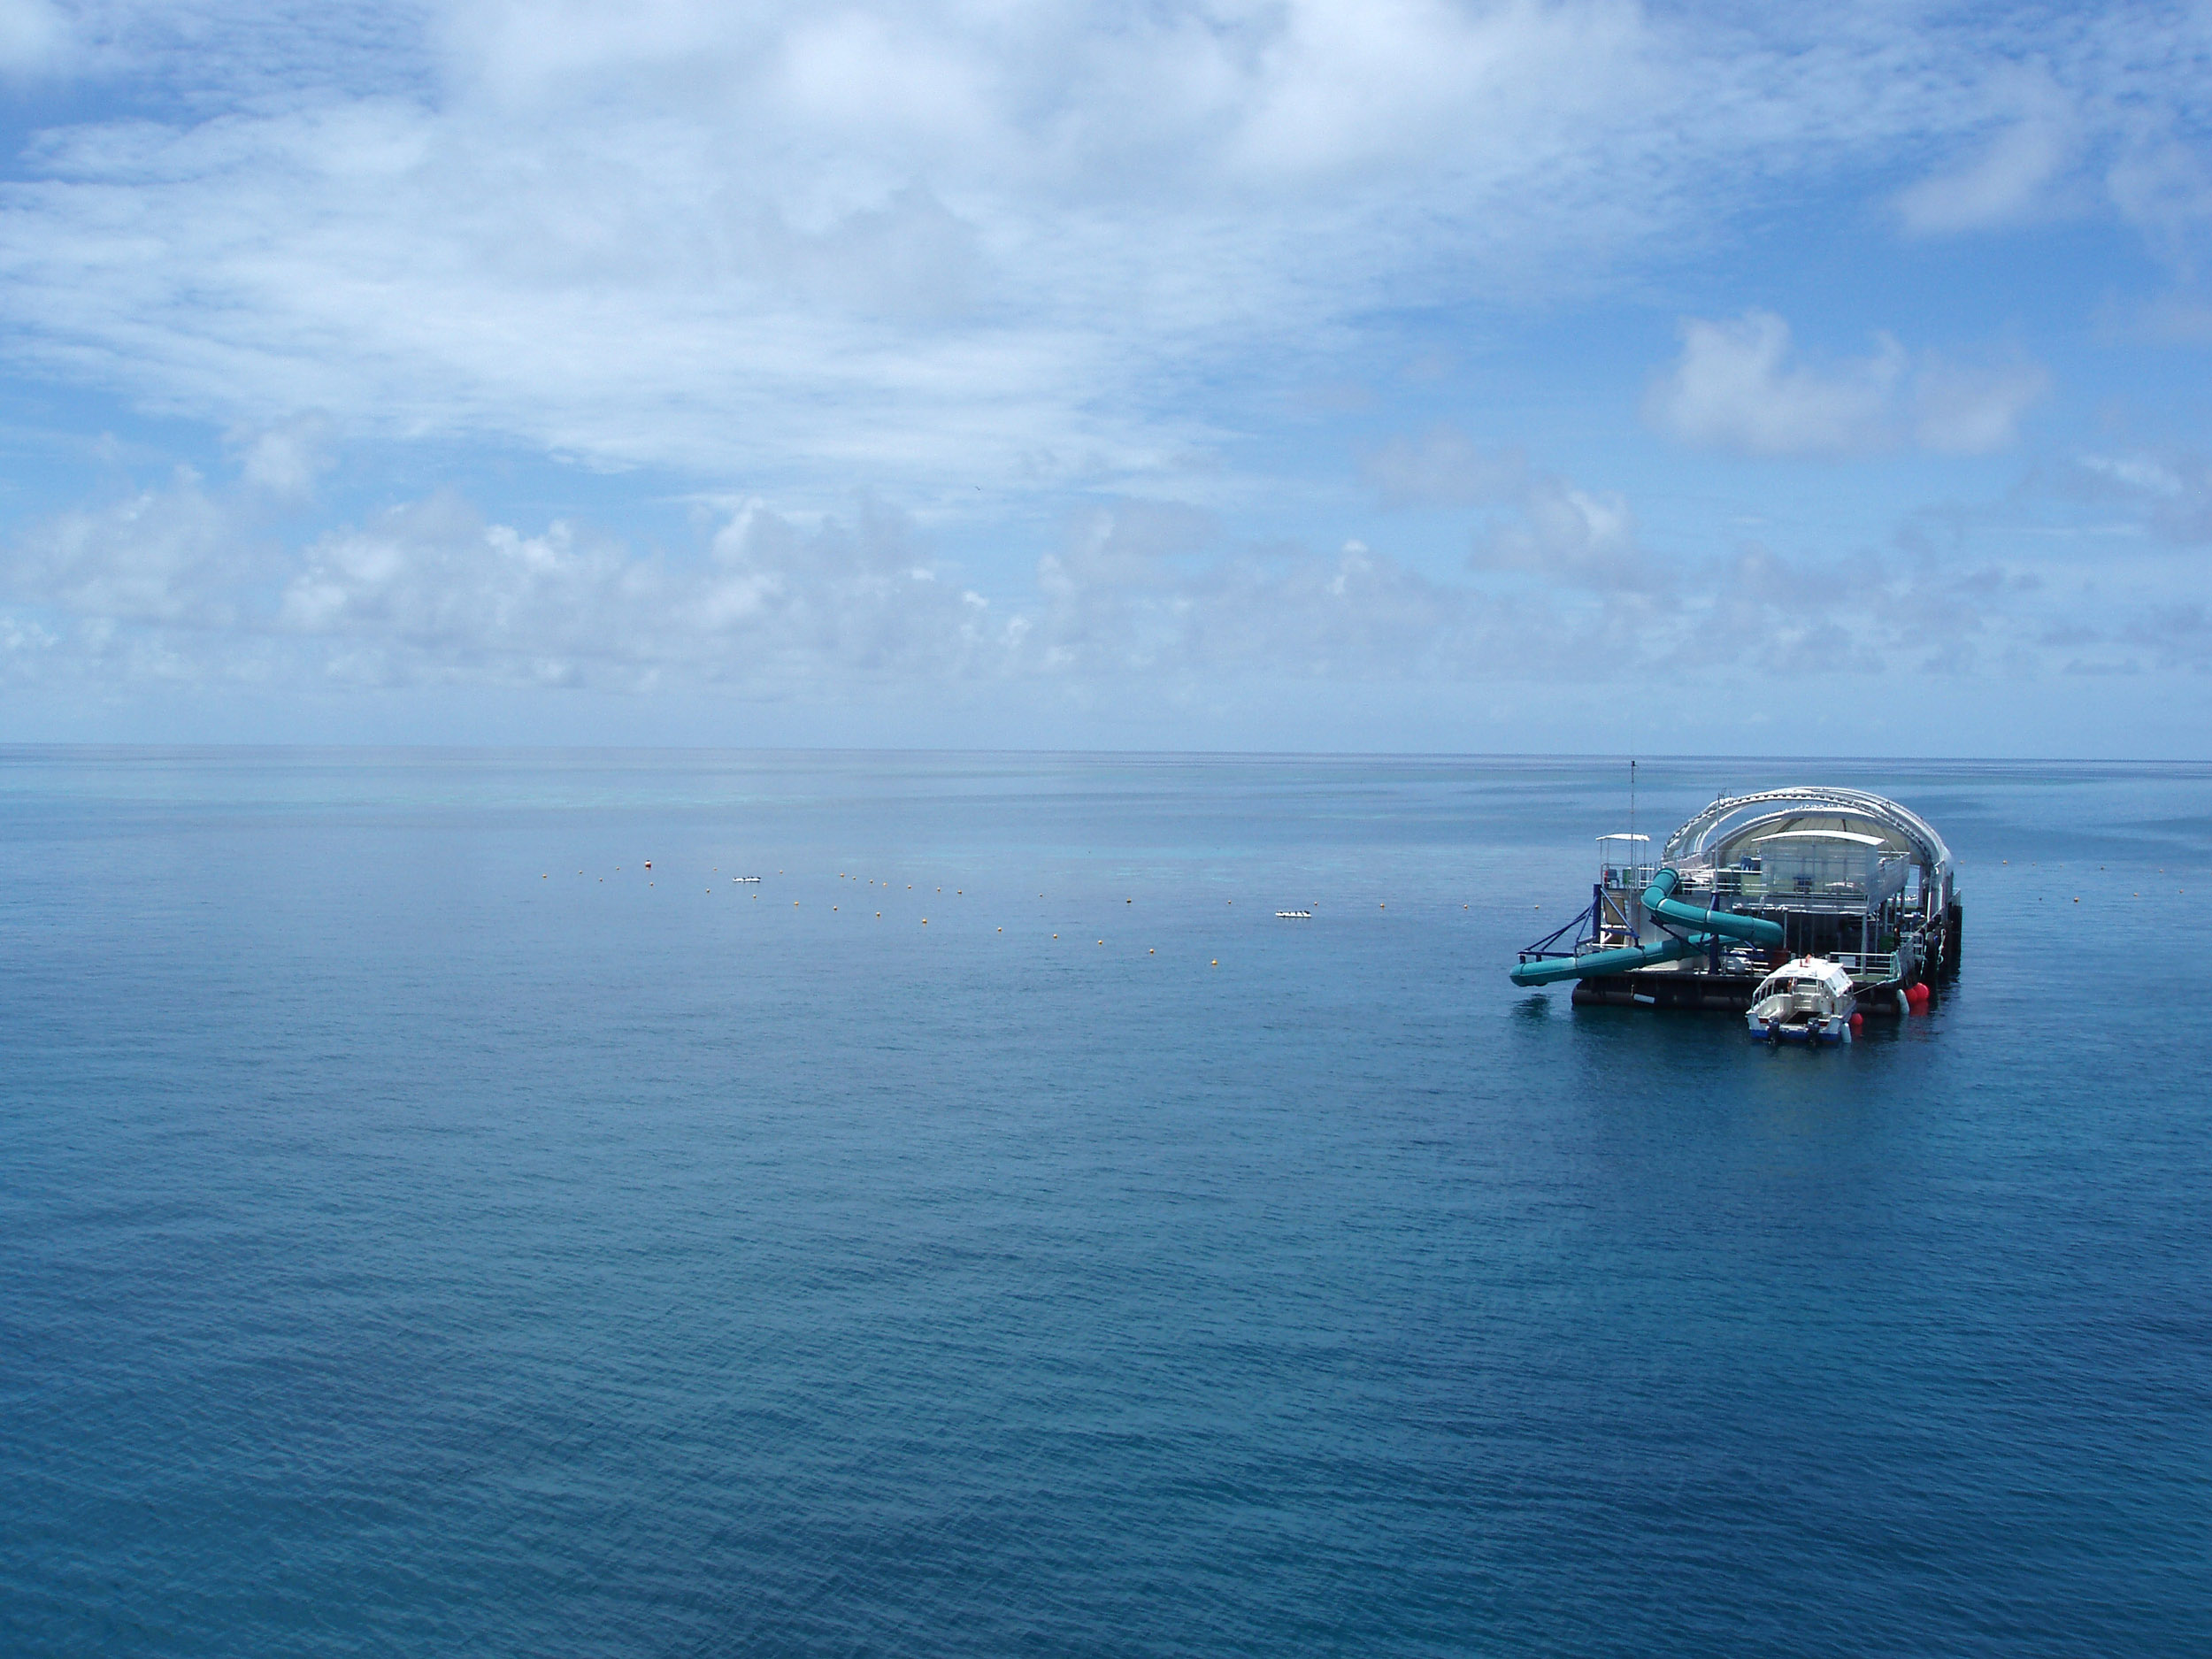 a nuckle reef diving pontoon on the great barrier reef, queensland